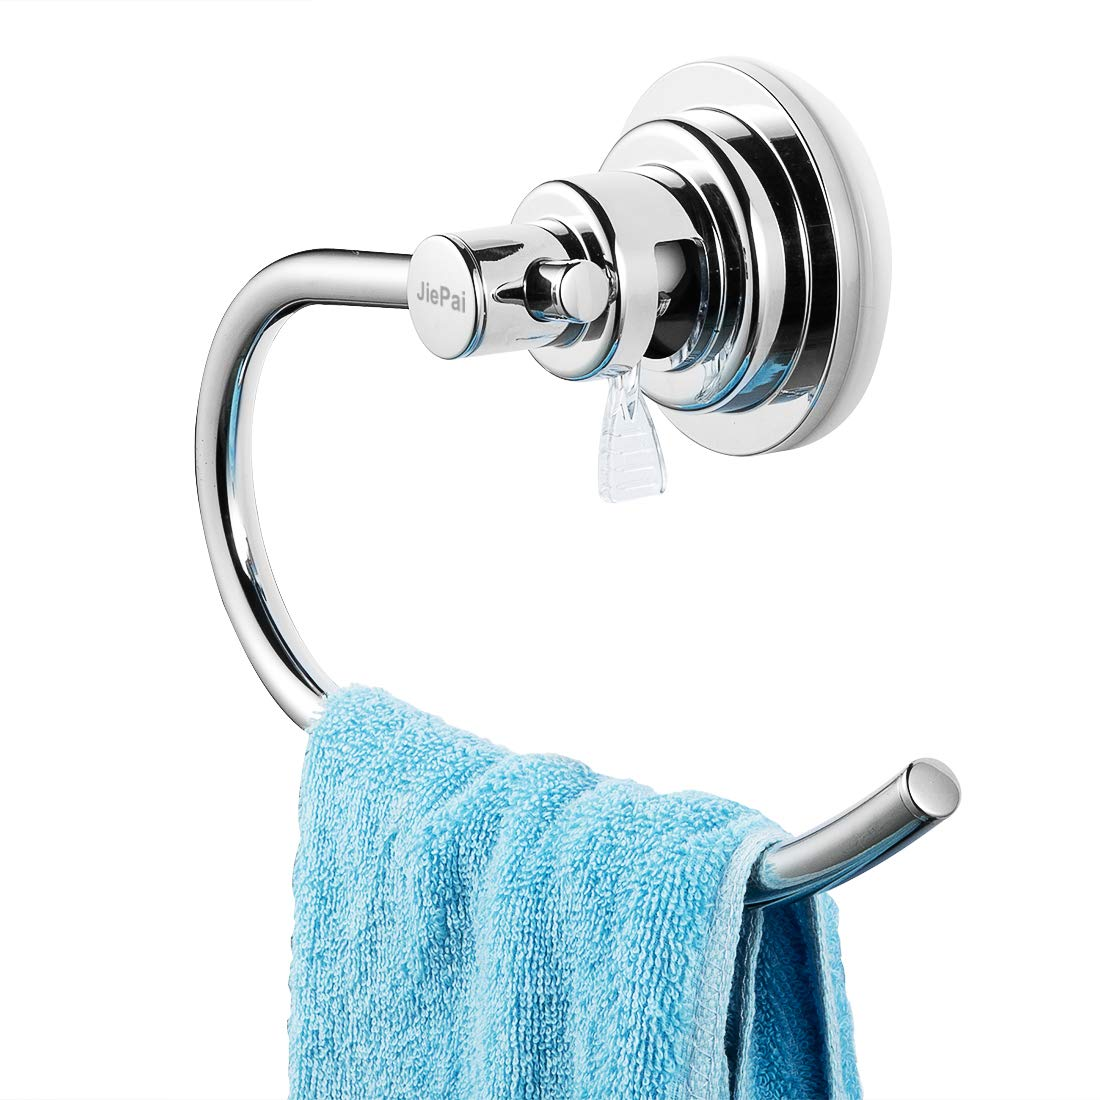 JIEPAI Suction Cup Towel Rack,Vacuum Suction Towel Holder,Modern Shower Towel Ring,Washcloth Hand Towel Holder for Bathroom & Kitchen-Drill Free,Chrome by JIEPAI